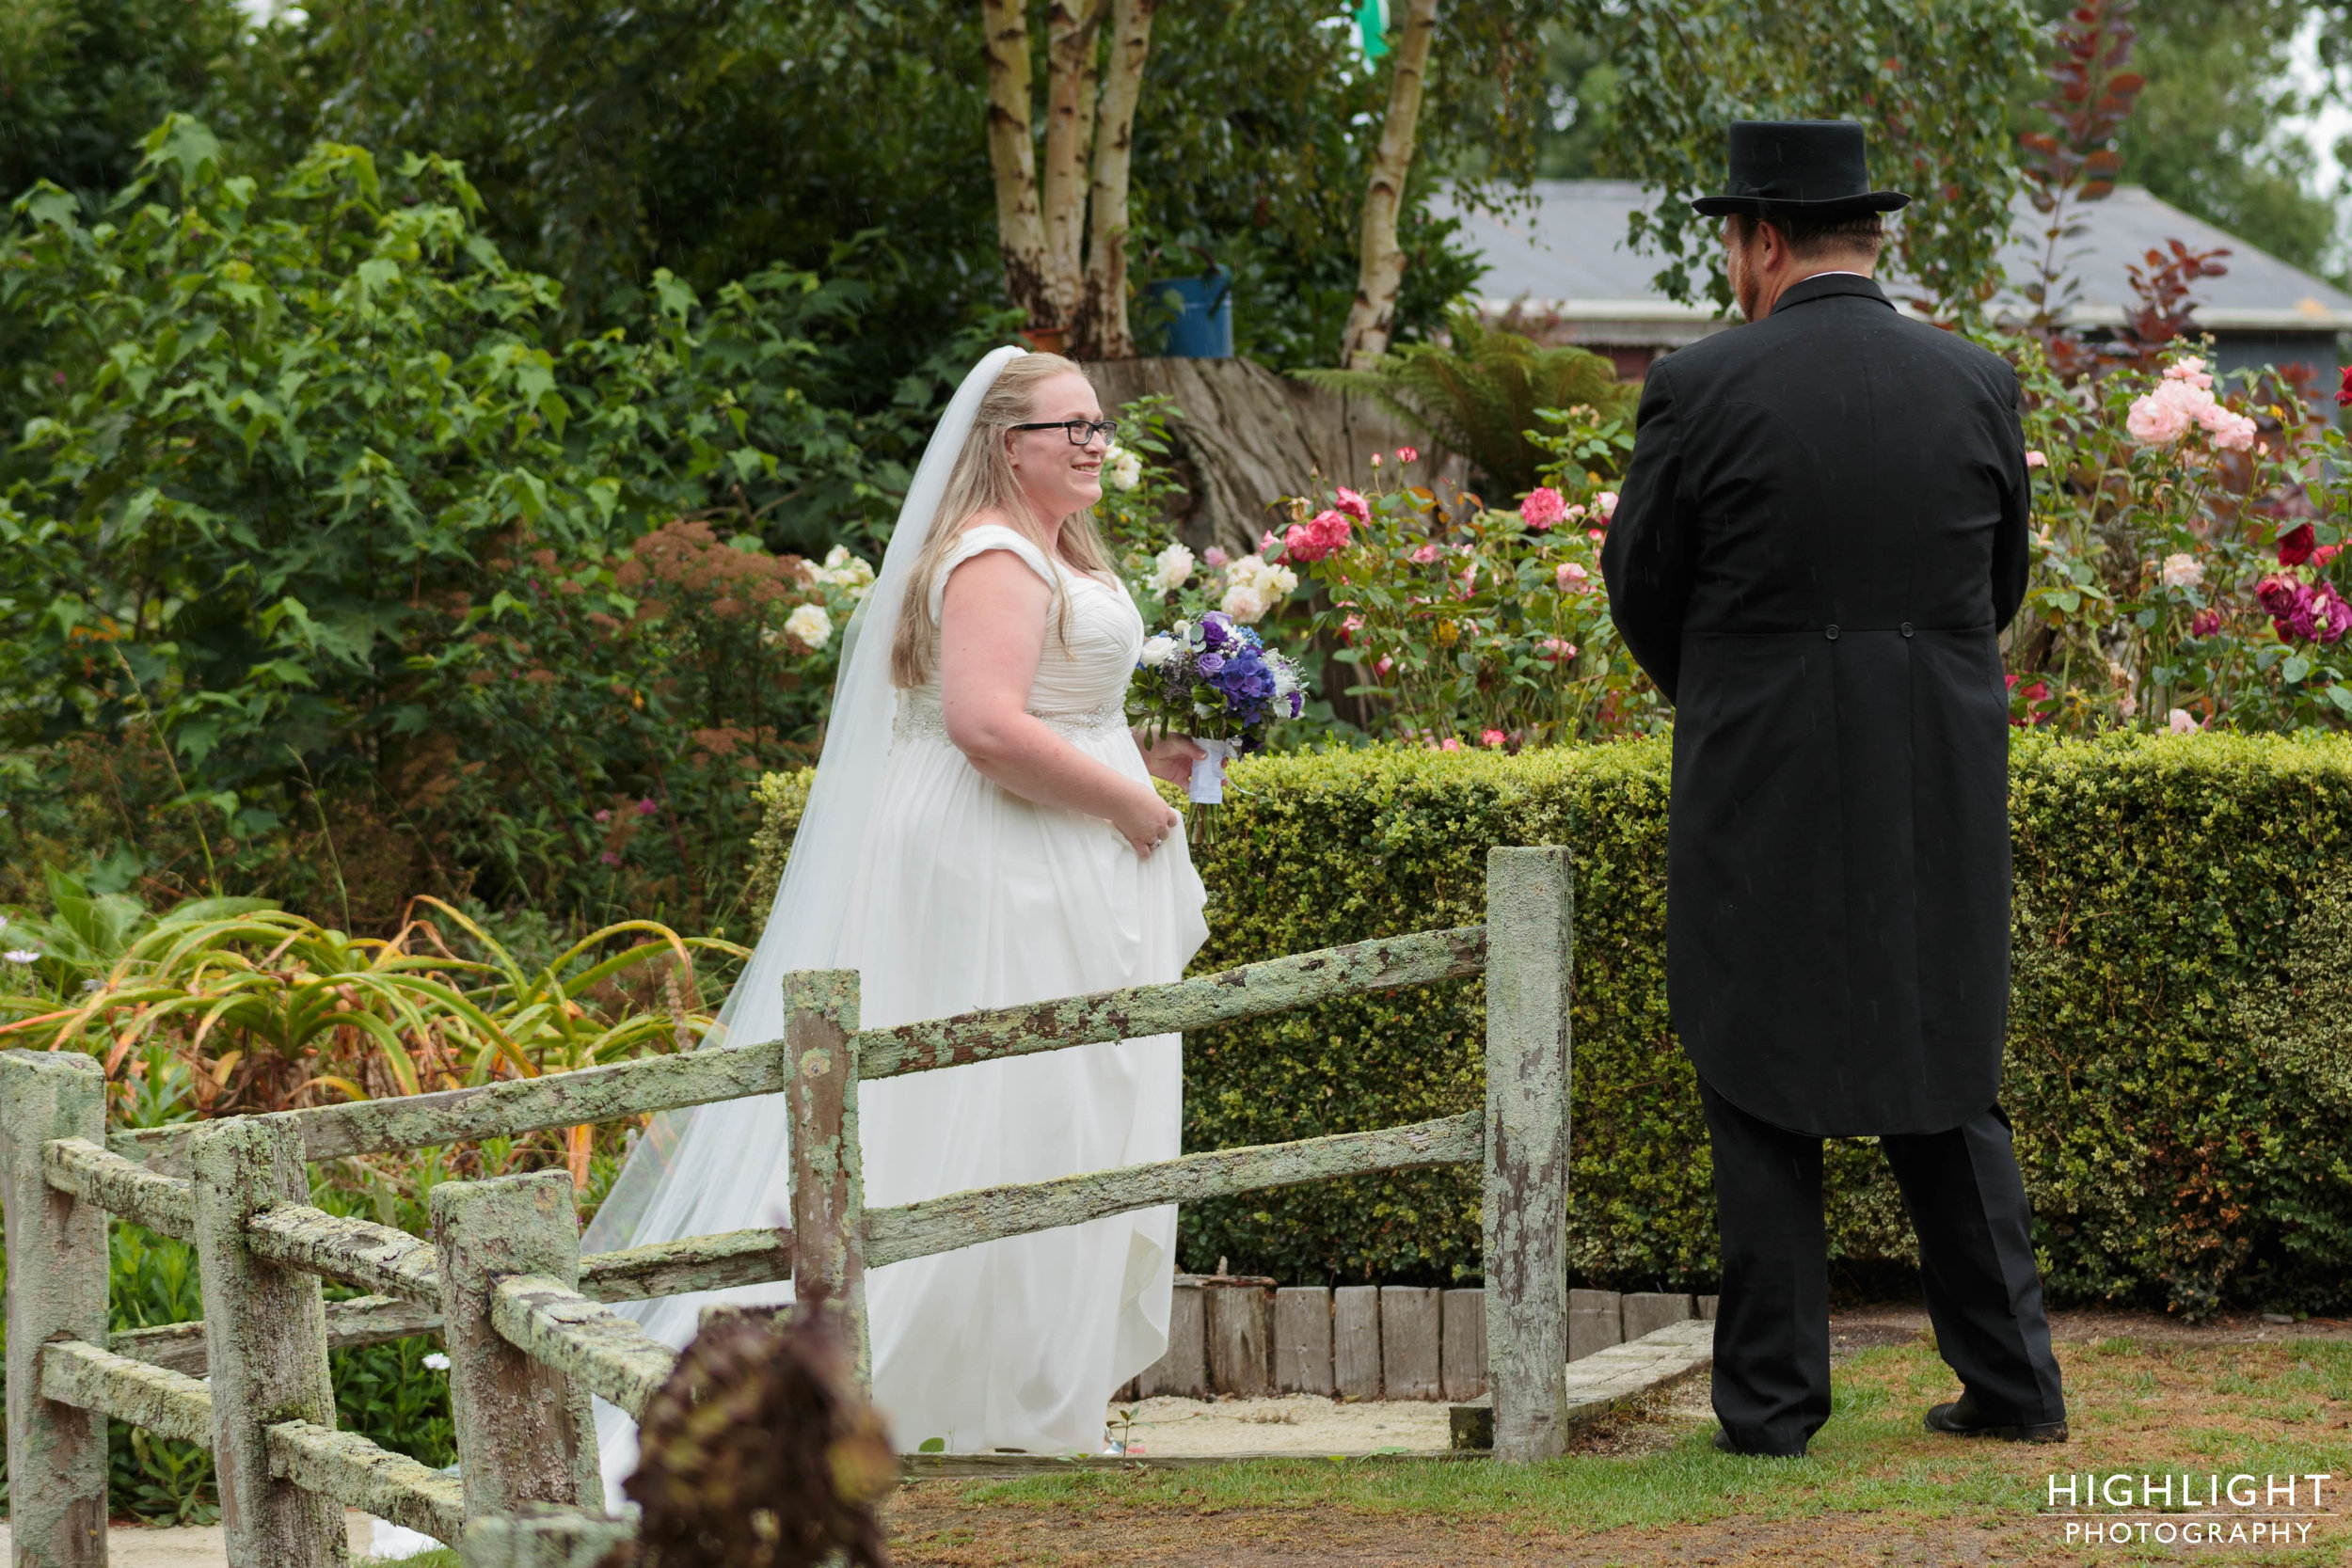 highlight-wedding-photography-new-zealand-palmerston-north-49.jpg